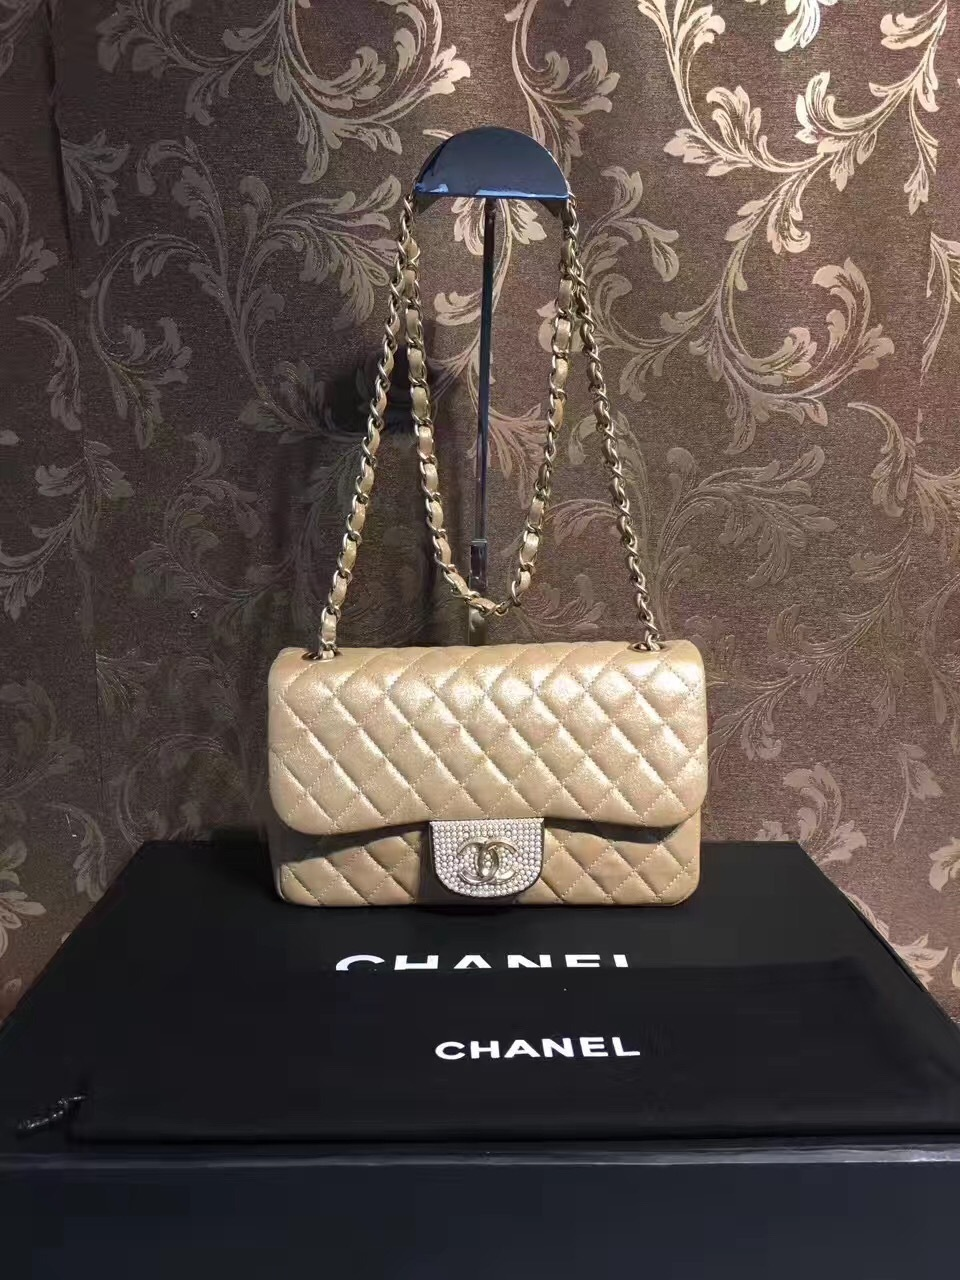 59e66279a8307f AUTHENTIC CHANEL LIMITED EDITION PEARL CLASSIC QUILTED FLAP BAG ...